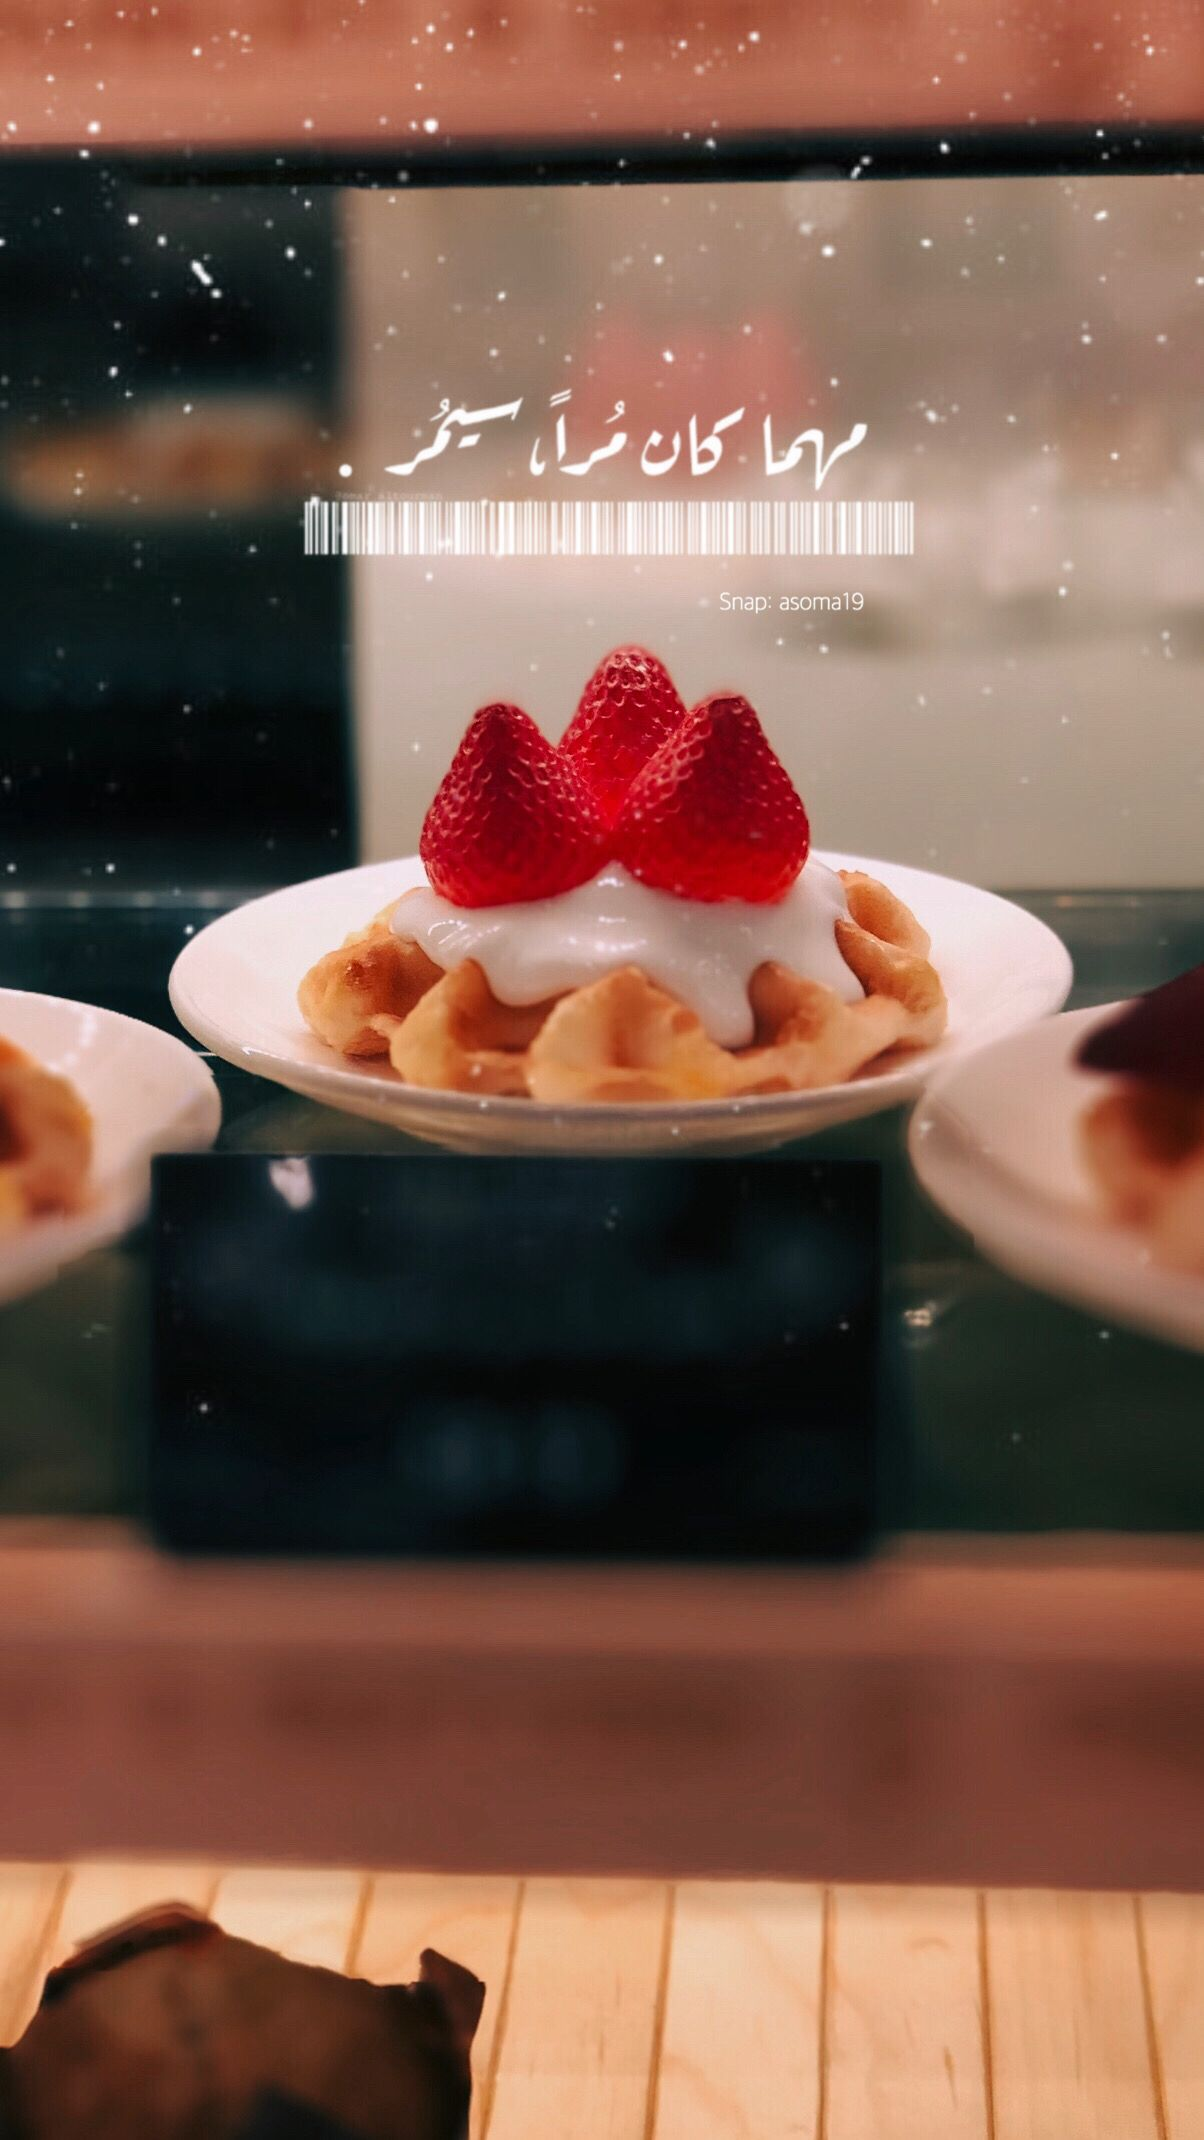 Pin By Semsem On يوميات In 2020 Food Breakfast Waffles